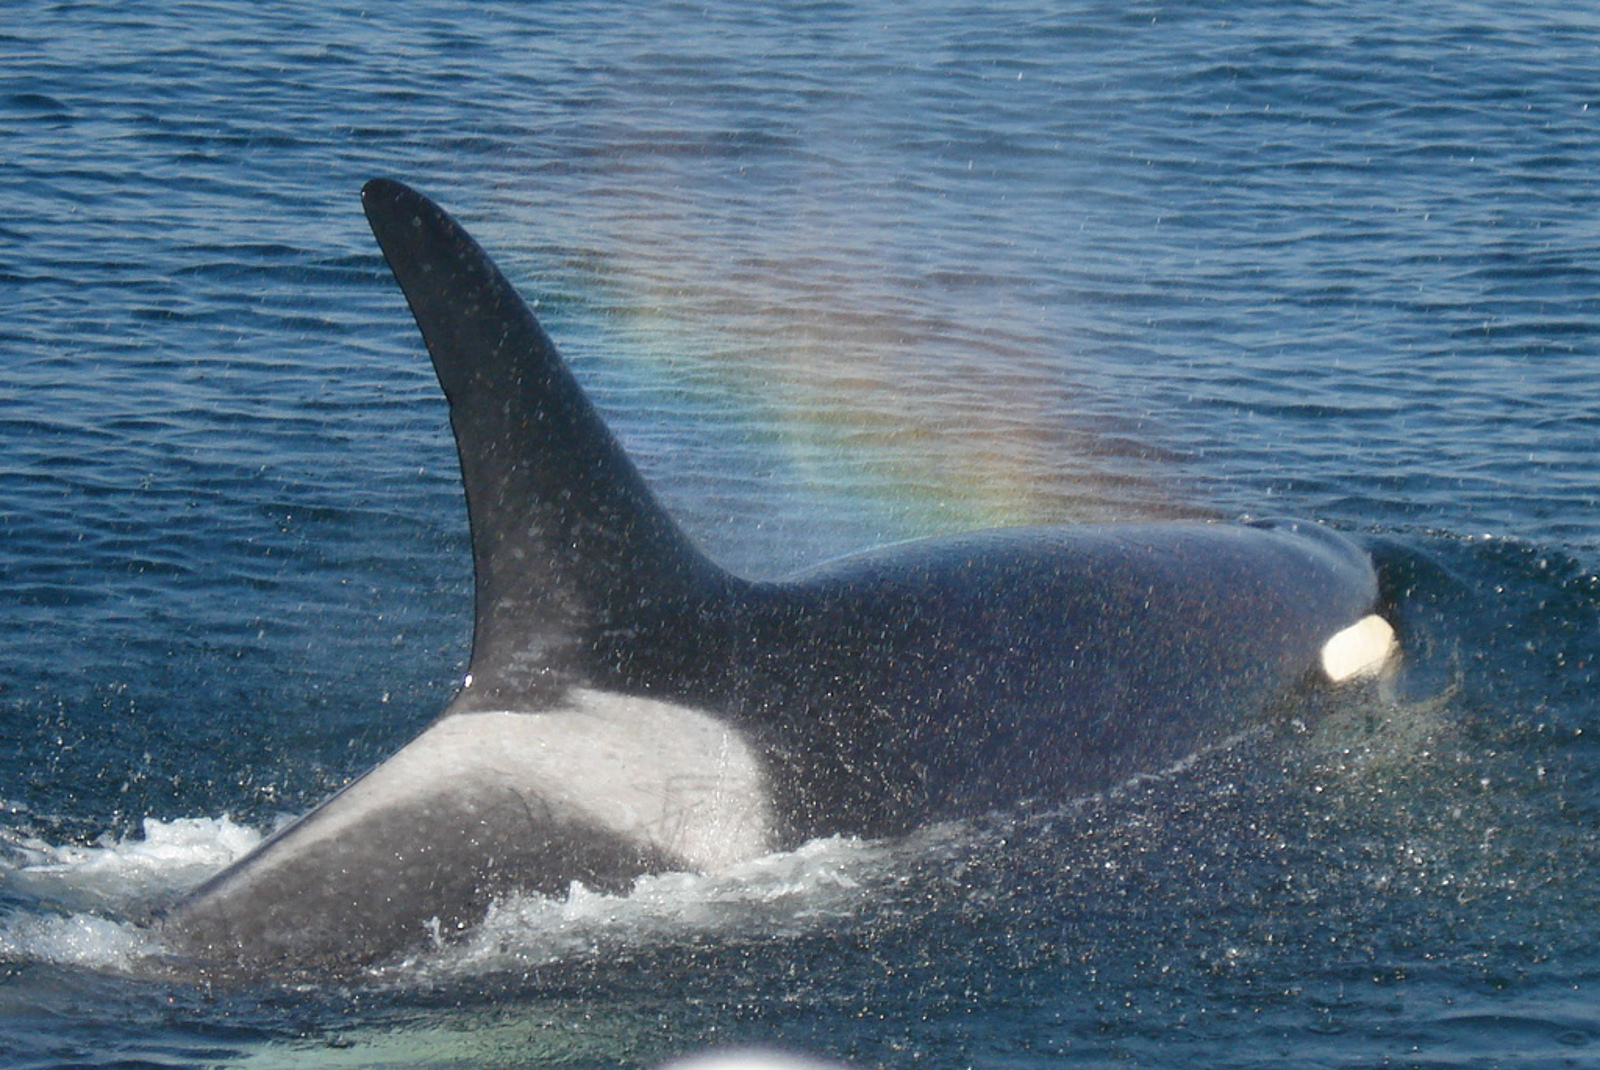 The Pacific Northwest's Wild Orcas are Starving to Extinction. Here's What You Can Do to Help